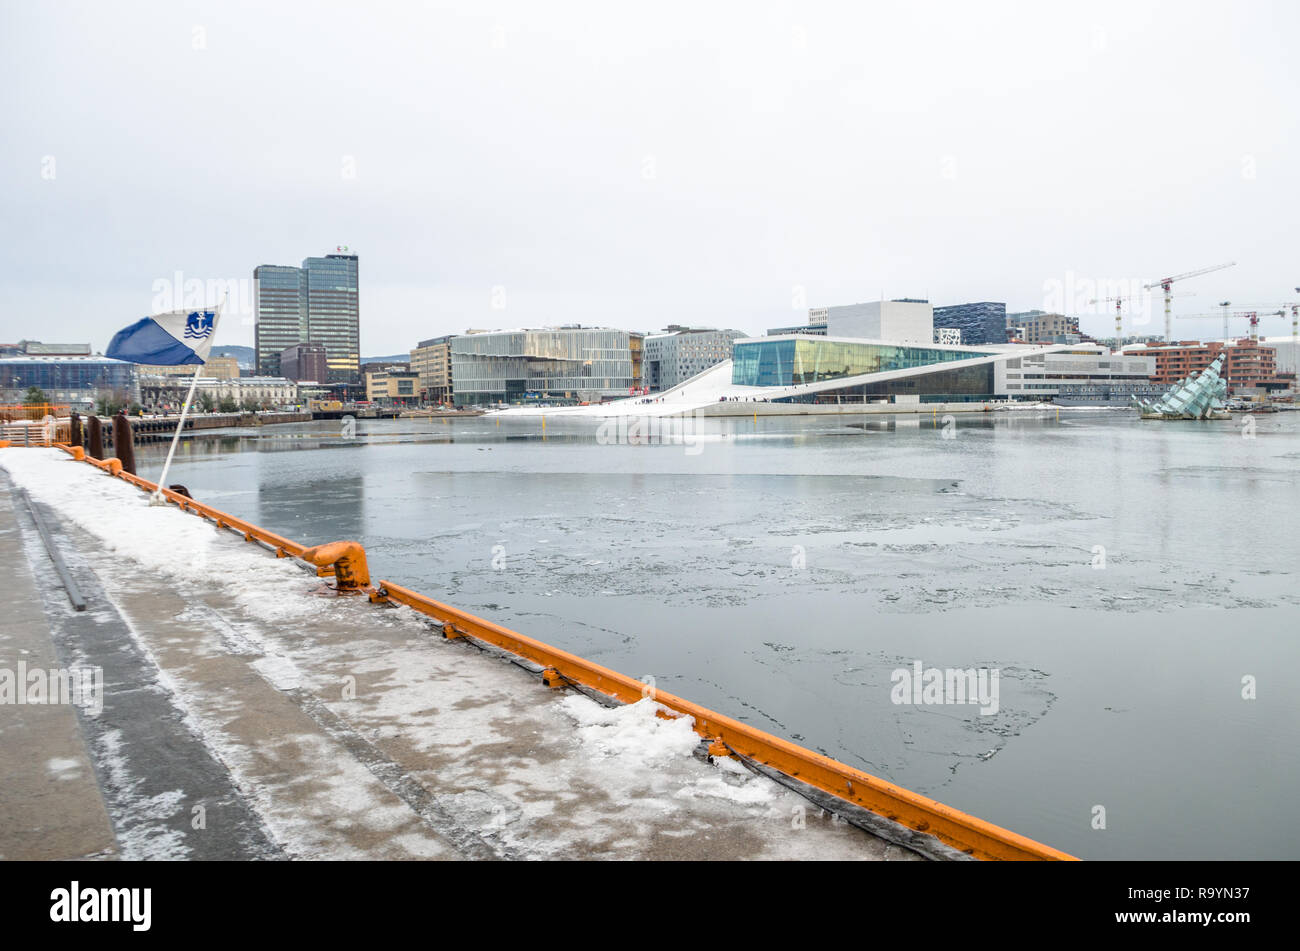 Winter cold view of Oslo Opera House. - Stock Image